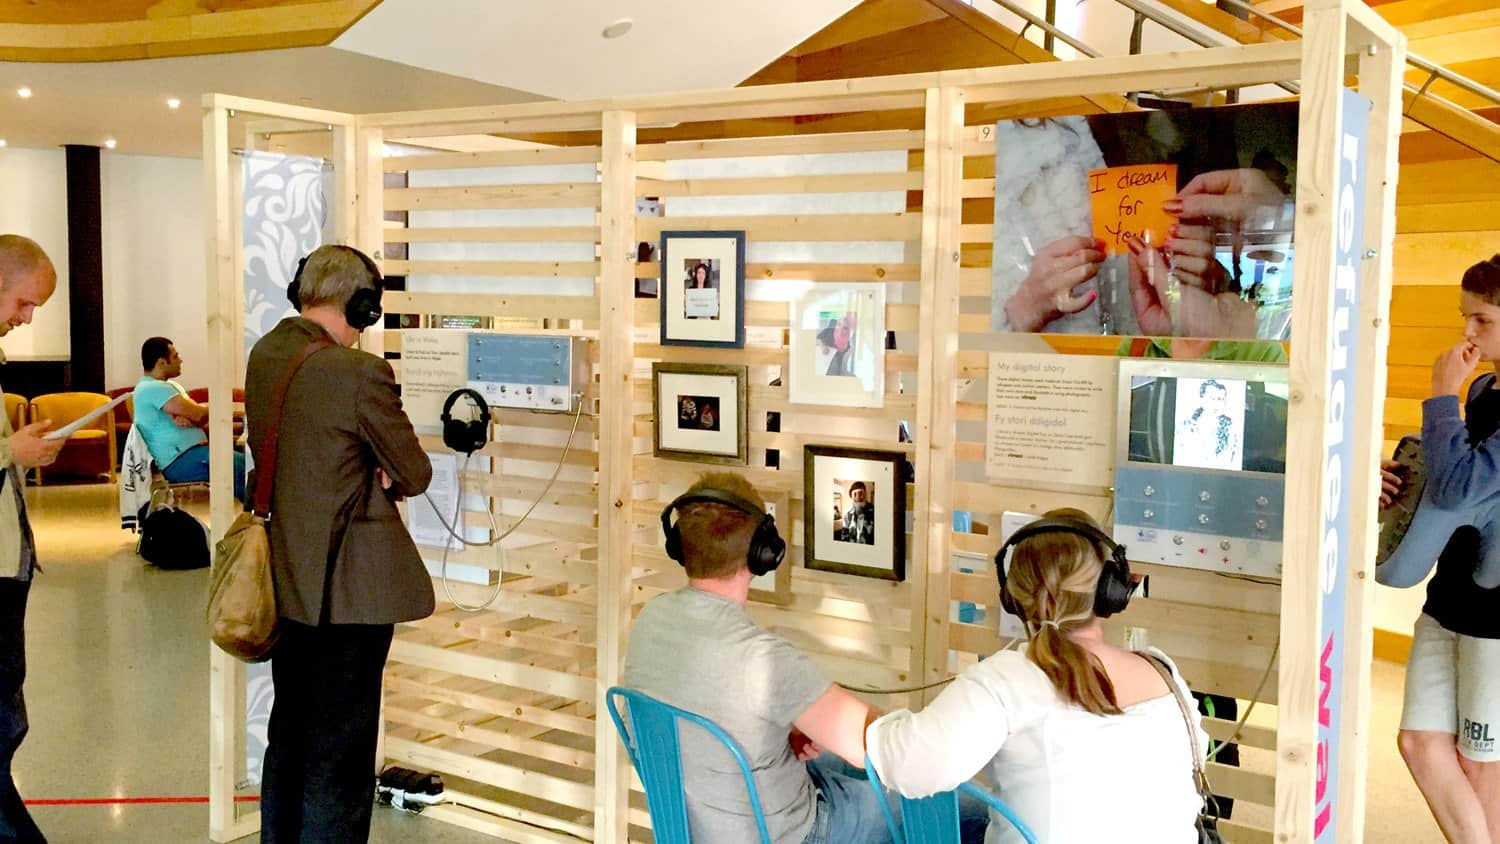 Blackbox-av Bespoke Video and Audio Unit for Oasis Cardiff exhibition